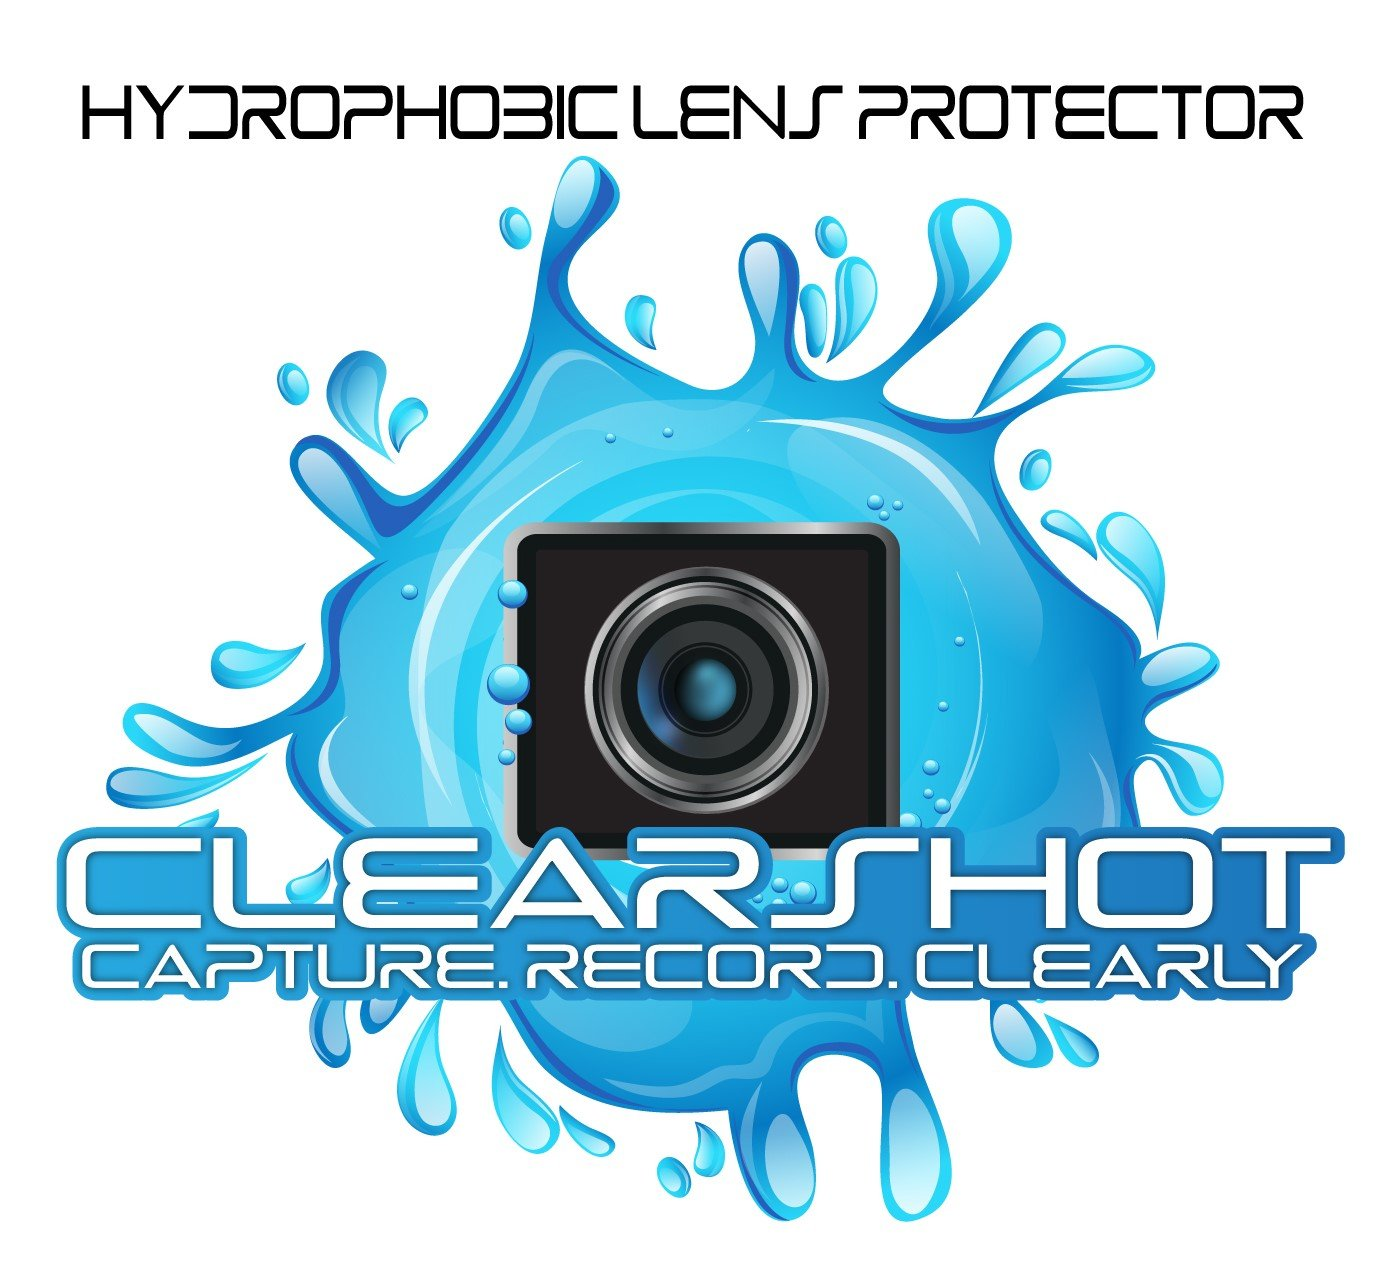 Hydrophobic Lens and Screen Protector for GoPro Hero 5/6 Black with FREE SILICONE LENS COVER (5.99 value). Anti-Scratch, Water/Snow Repellent, Touchscreen Compatible, Lasts up to 6 Months.